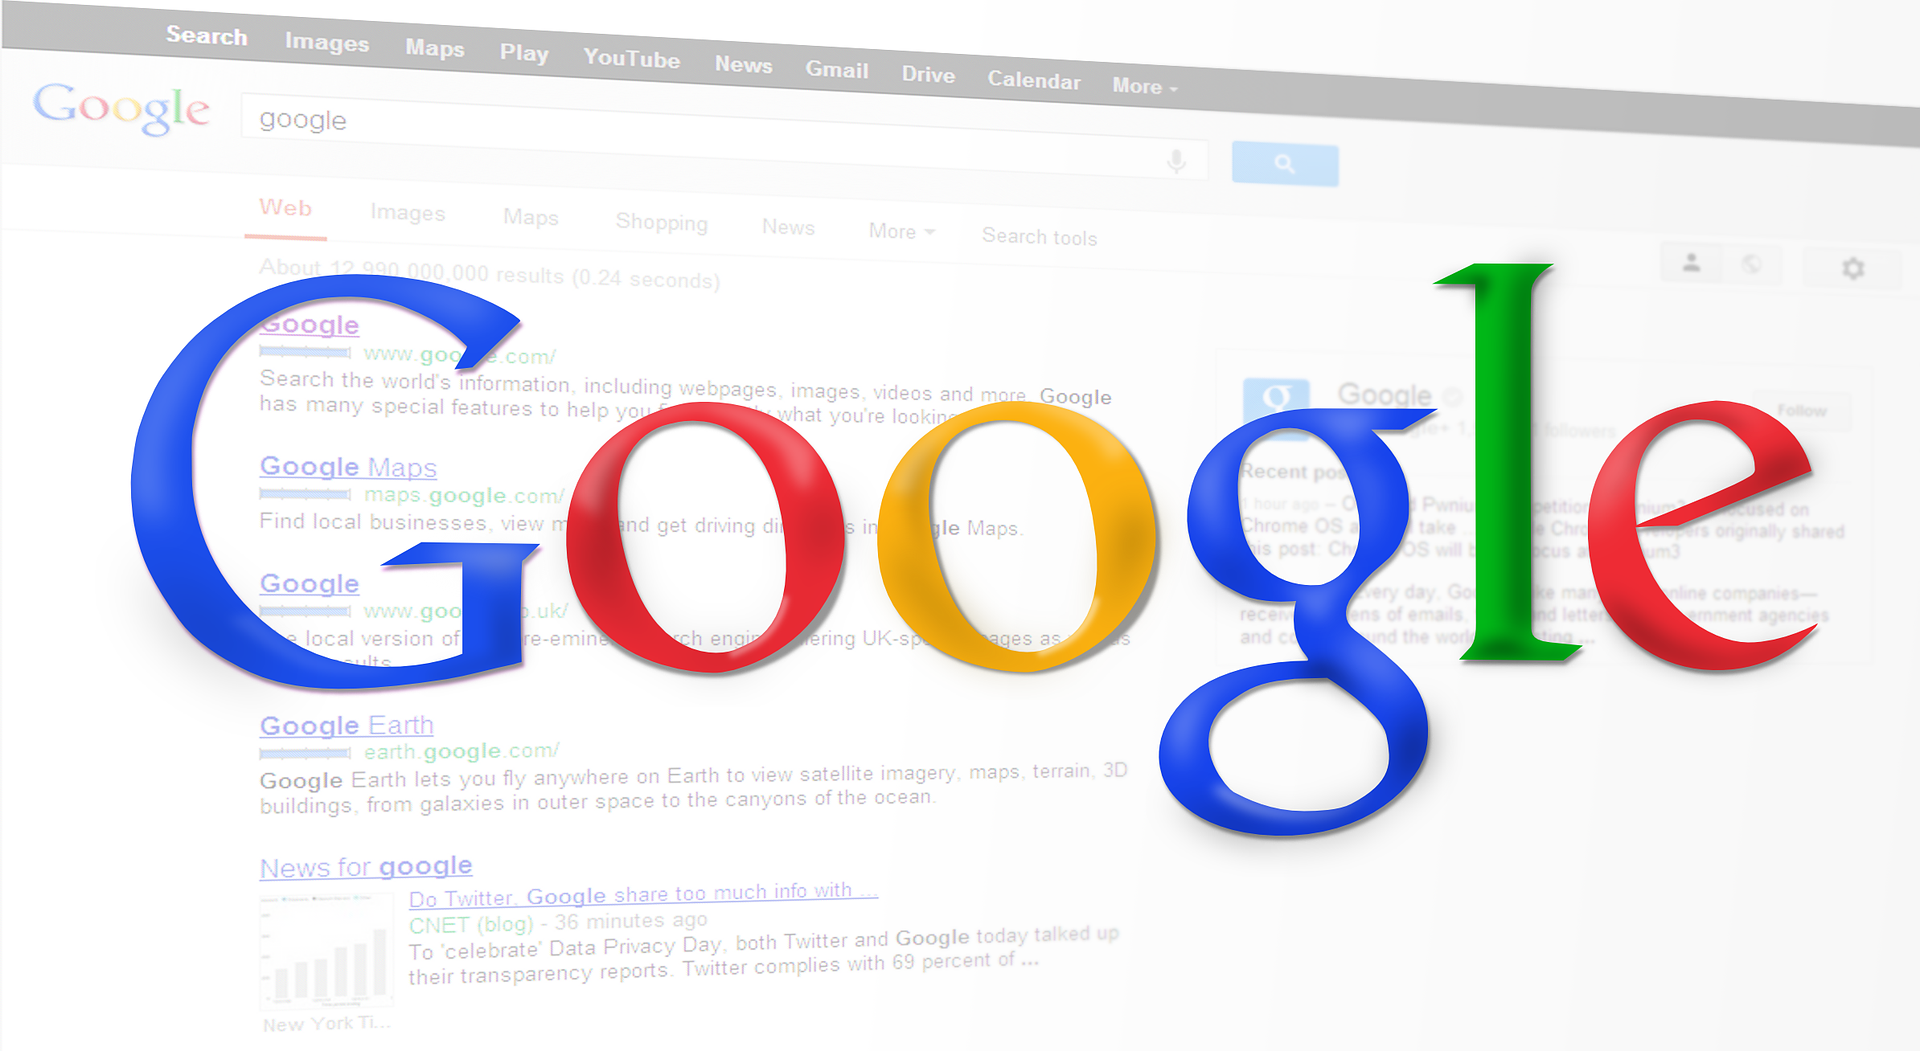 Google Ads is working on the Insights page to make business easier